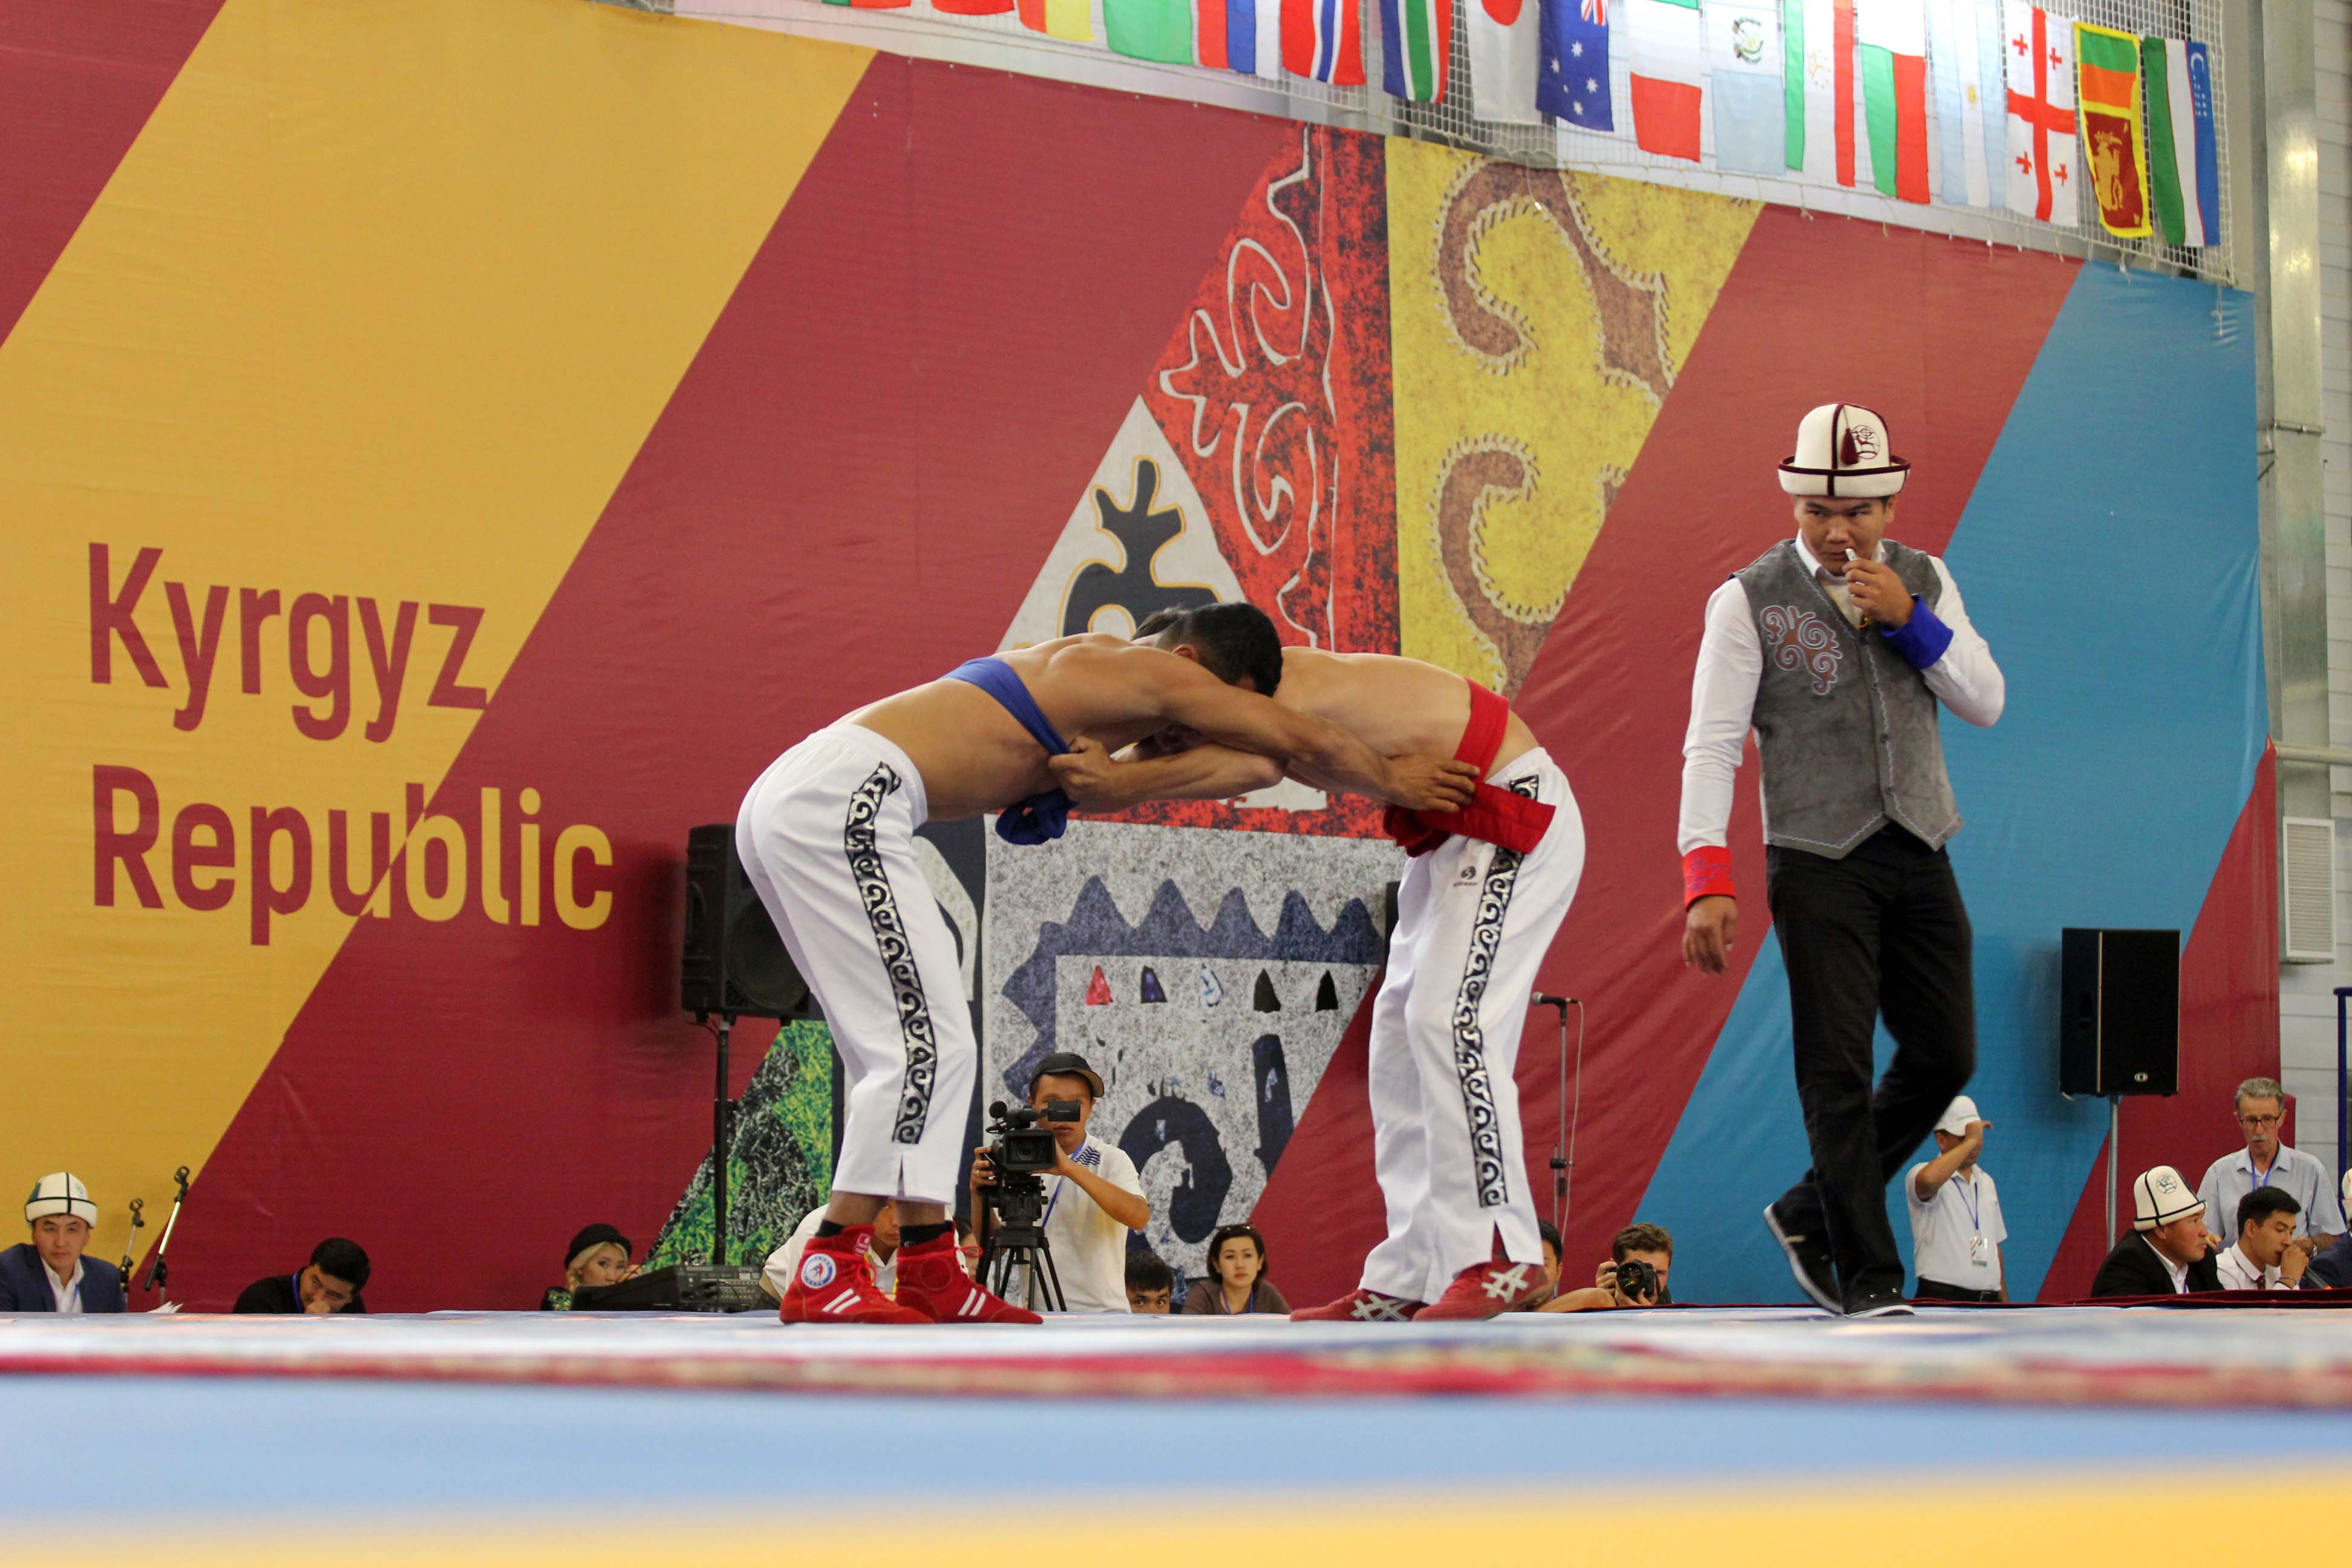 Spectacle and Sport at the World Nomad Games